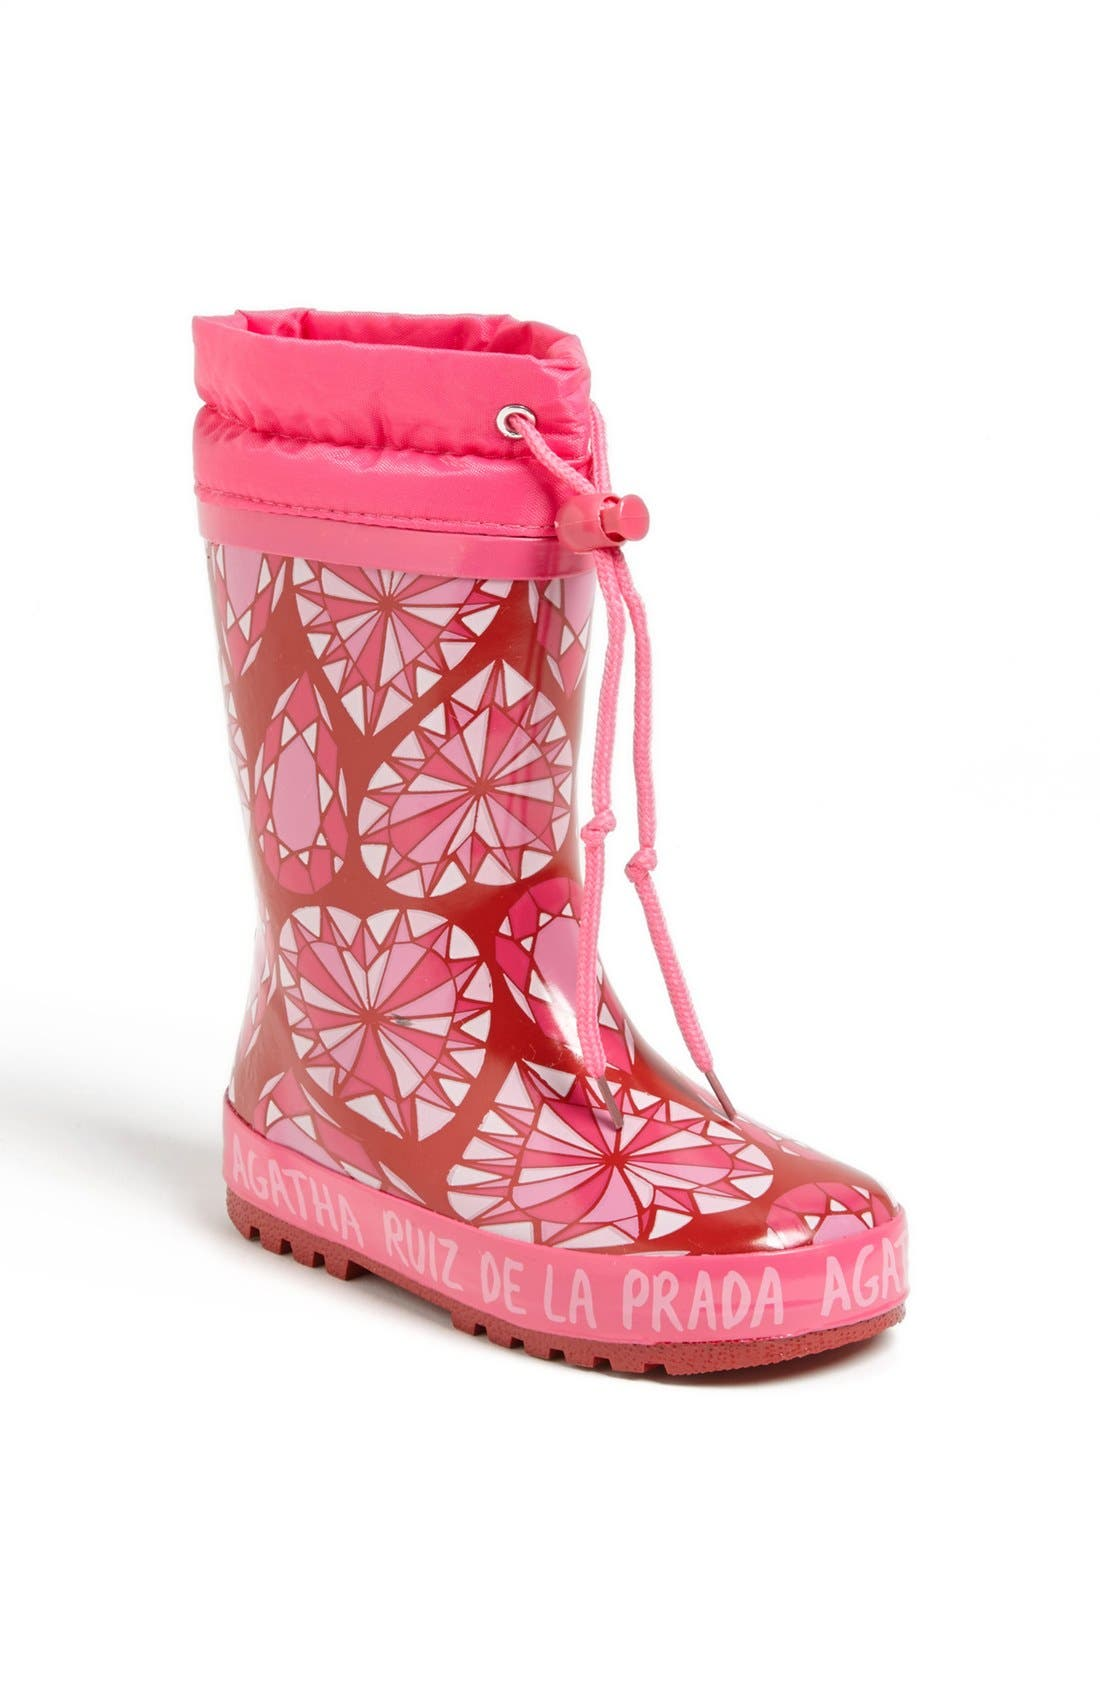 Main Image - Agatha Ruiz de la Prada 'Diamond' Rain Boot (Toddler, Little Kid & Big Kid)